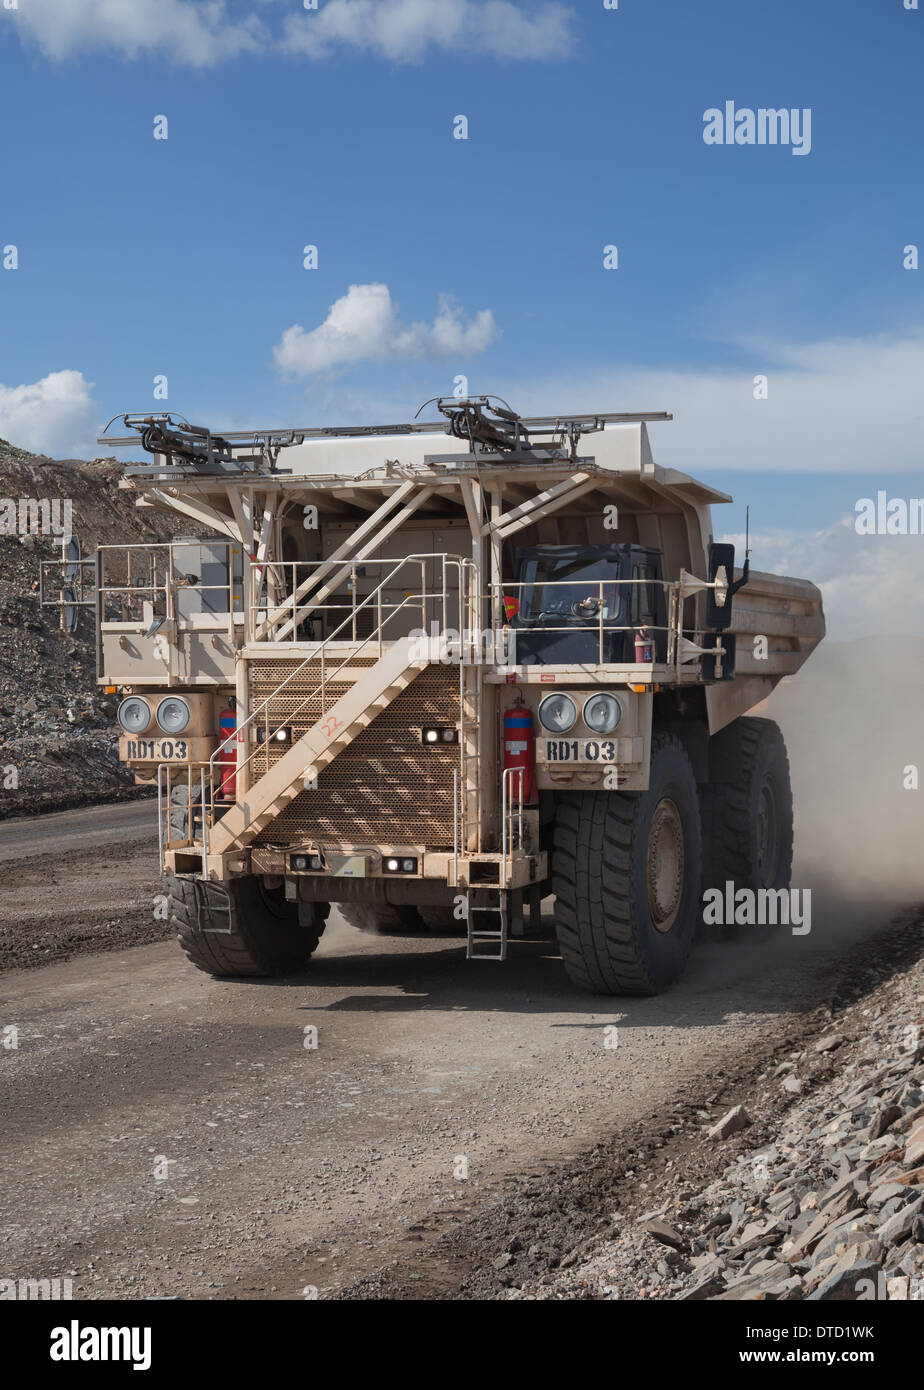 Massive white hitatchi dump truck driving in a large open cast copper and gold mine in Africa - Stock Image